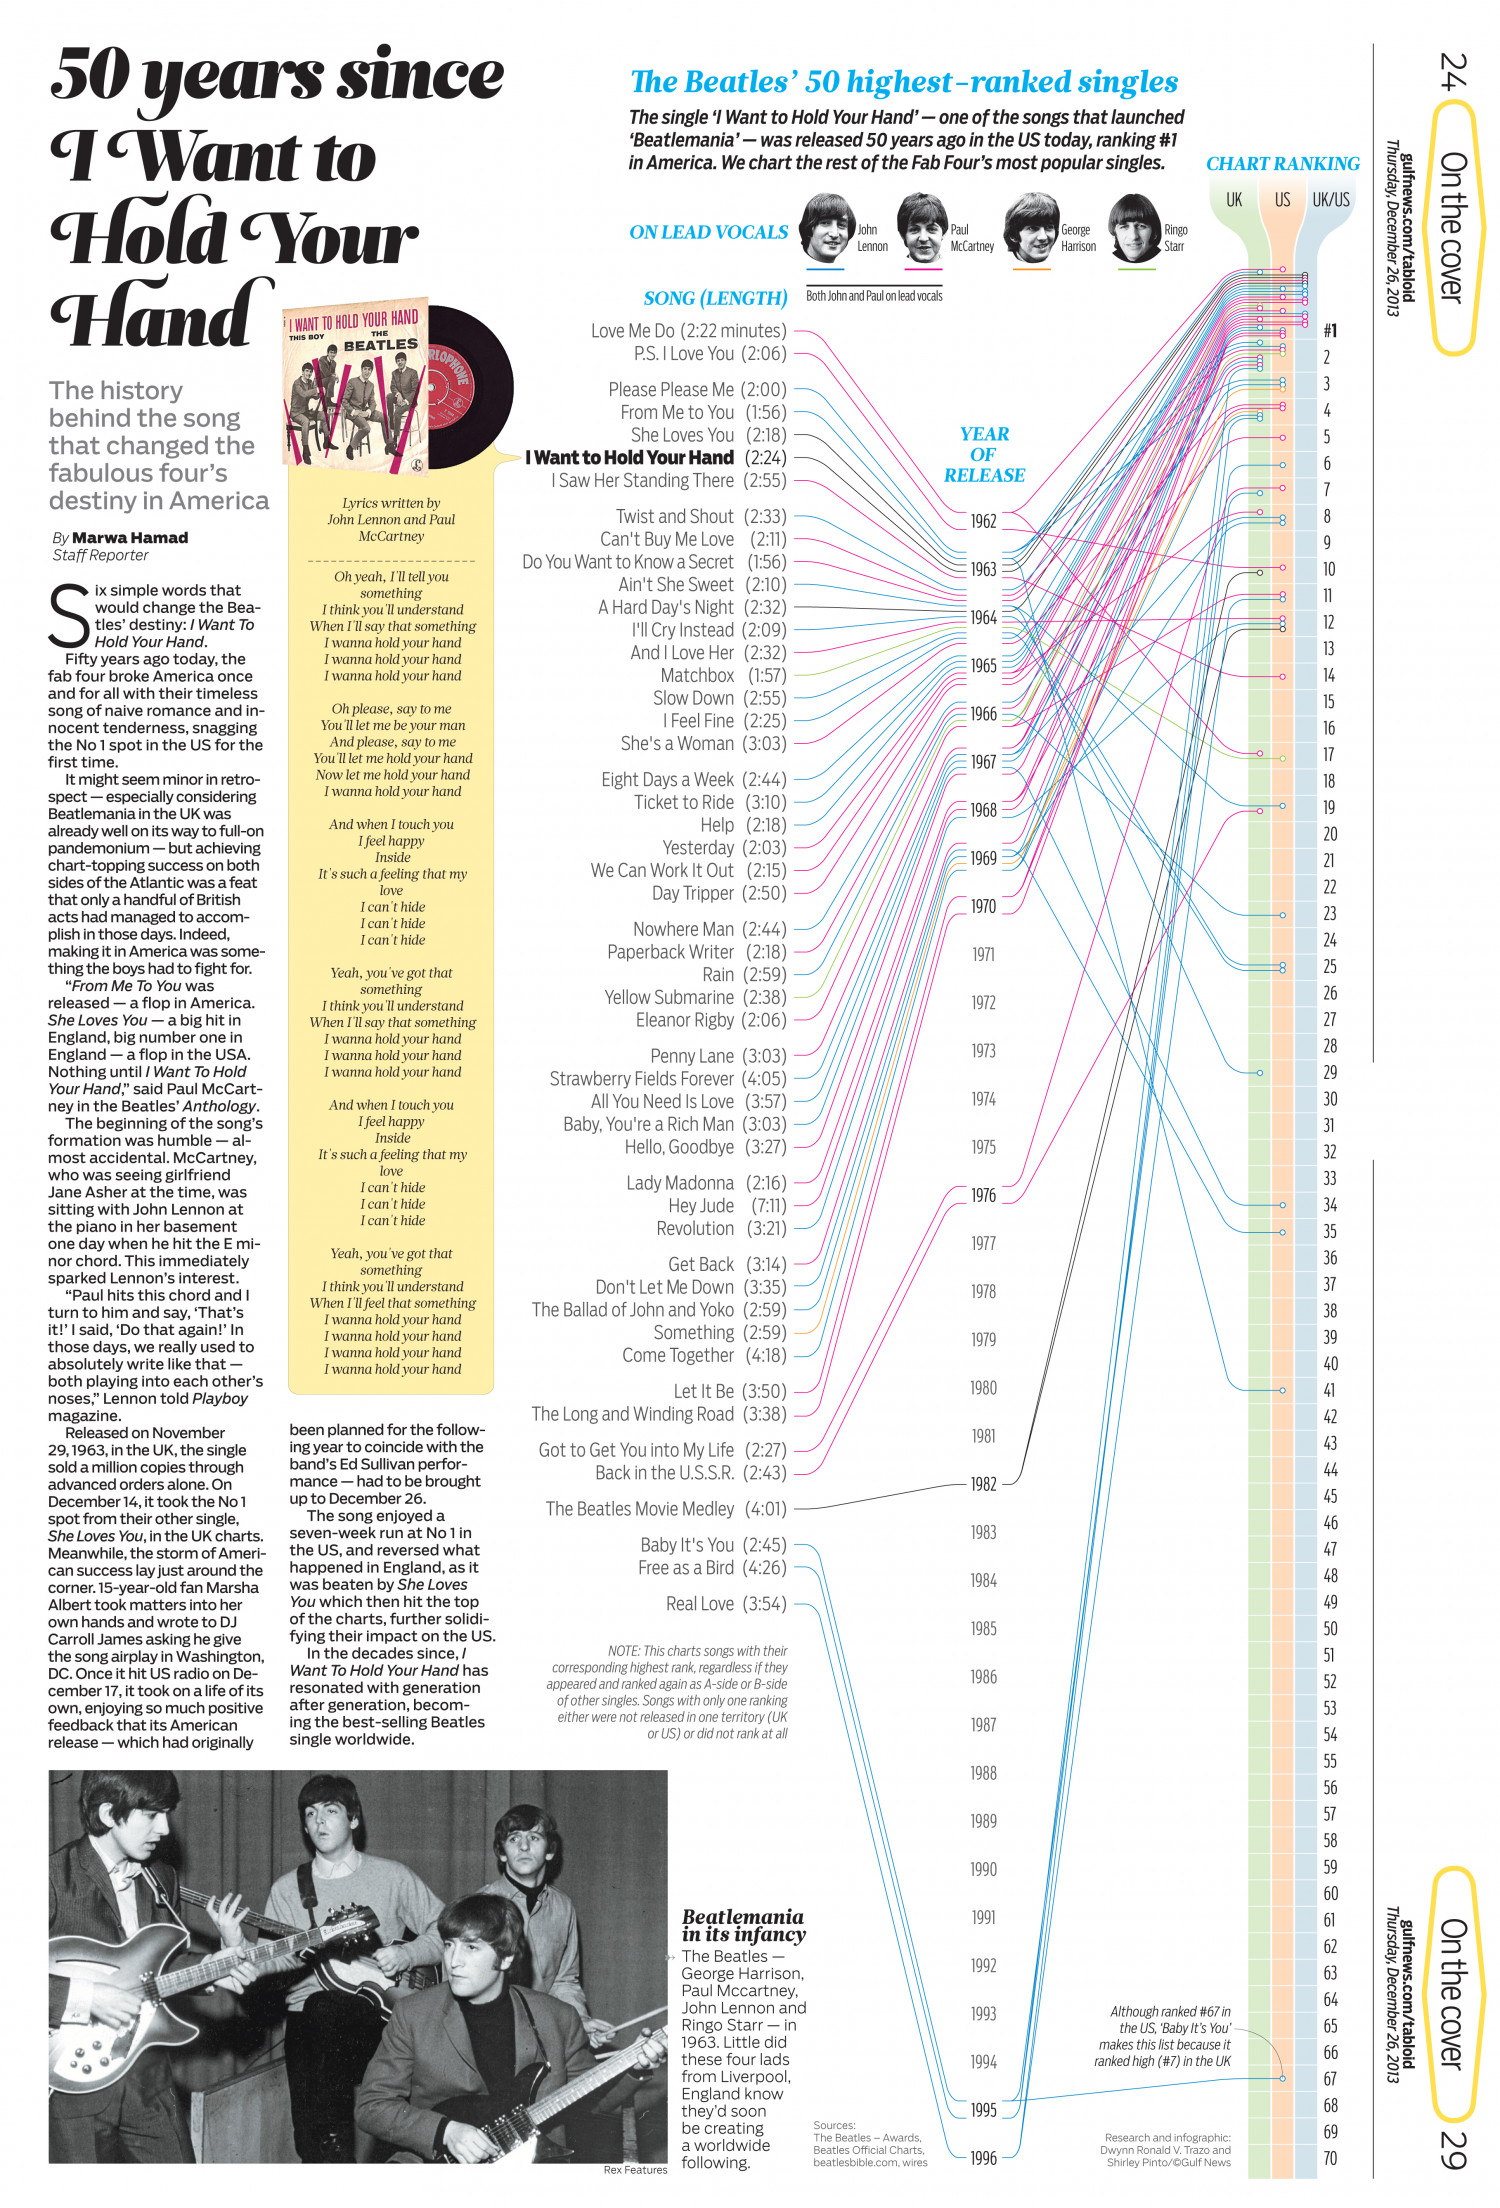 Beatles Top 50 singles Infographic